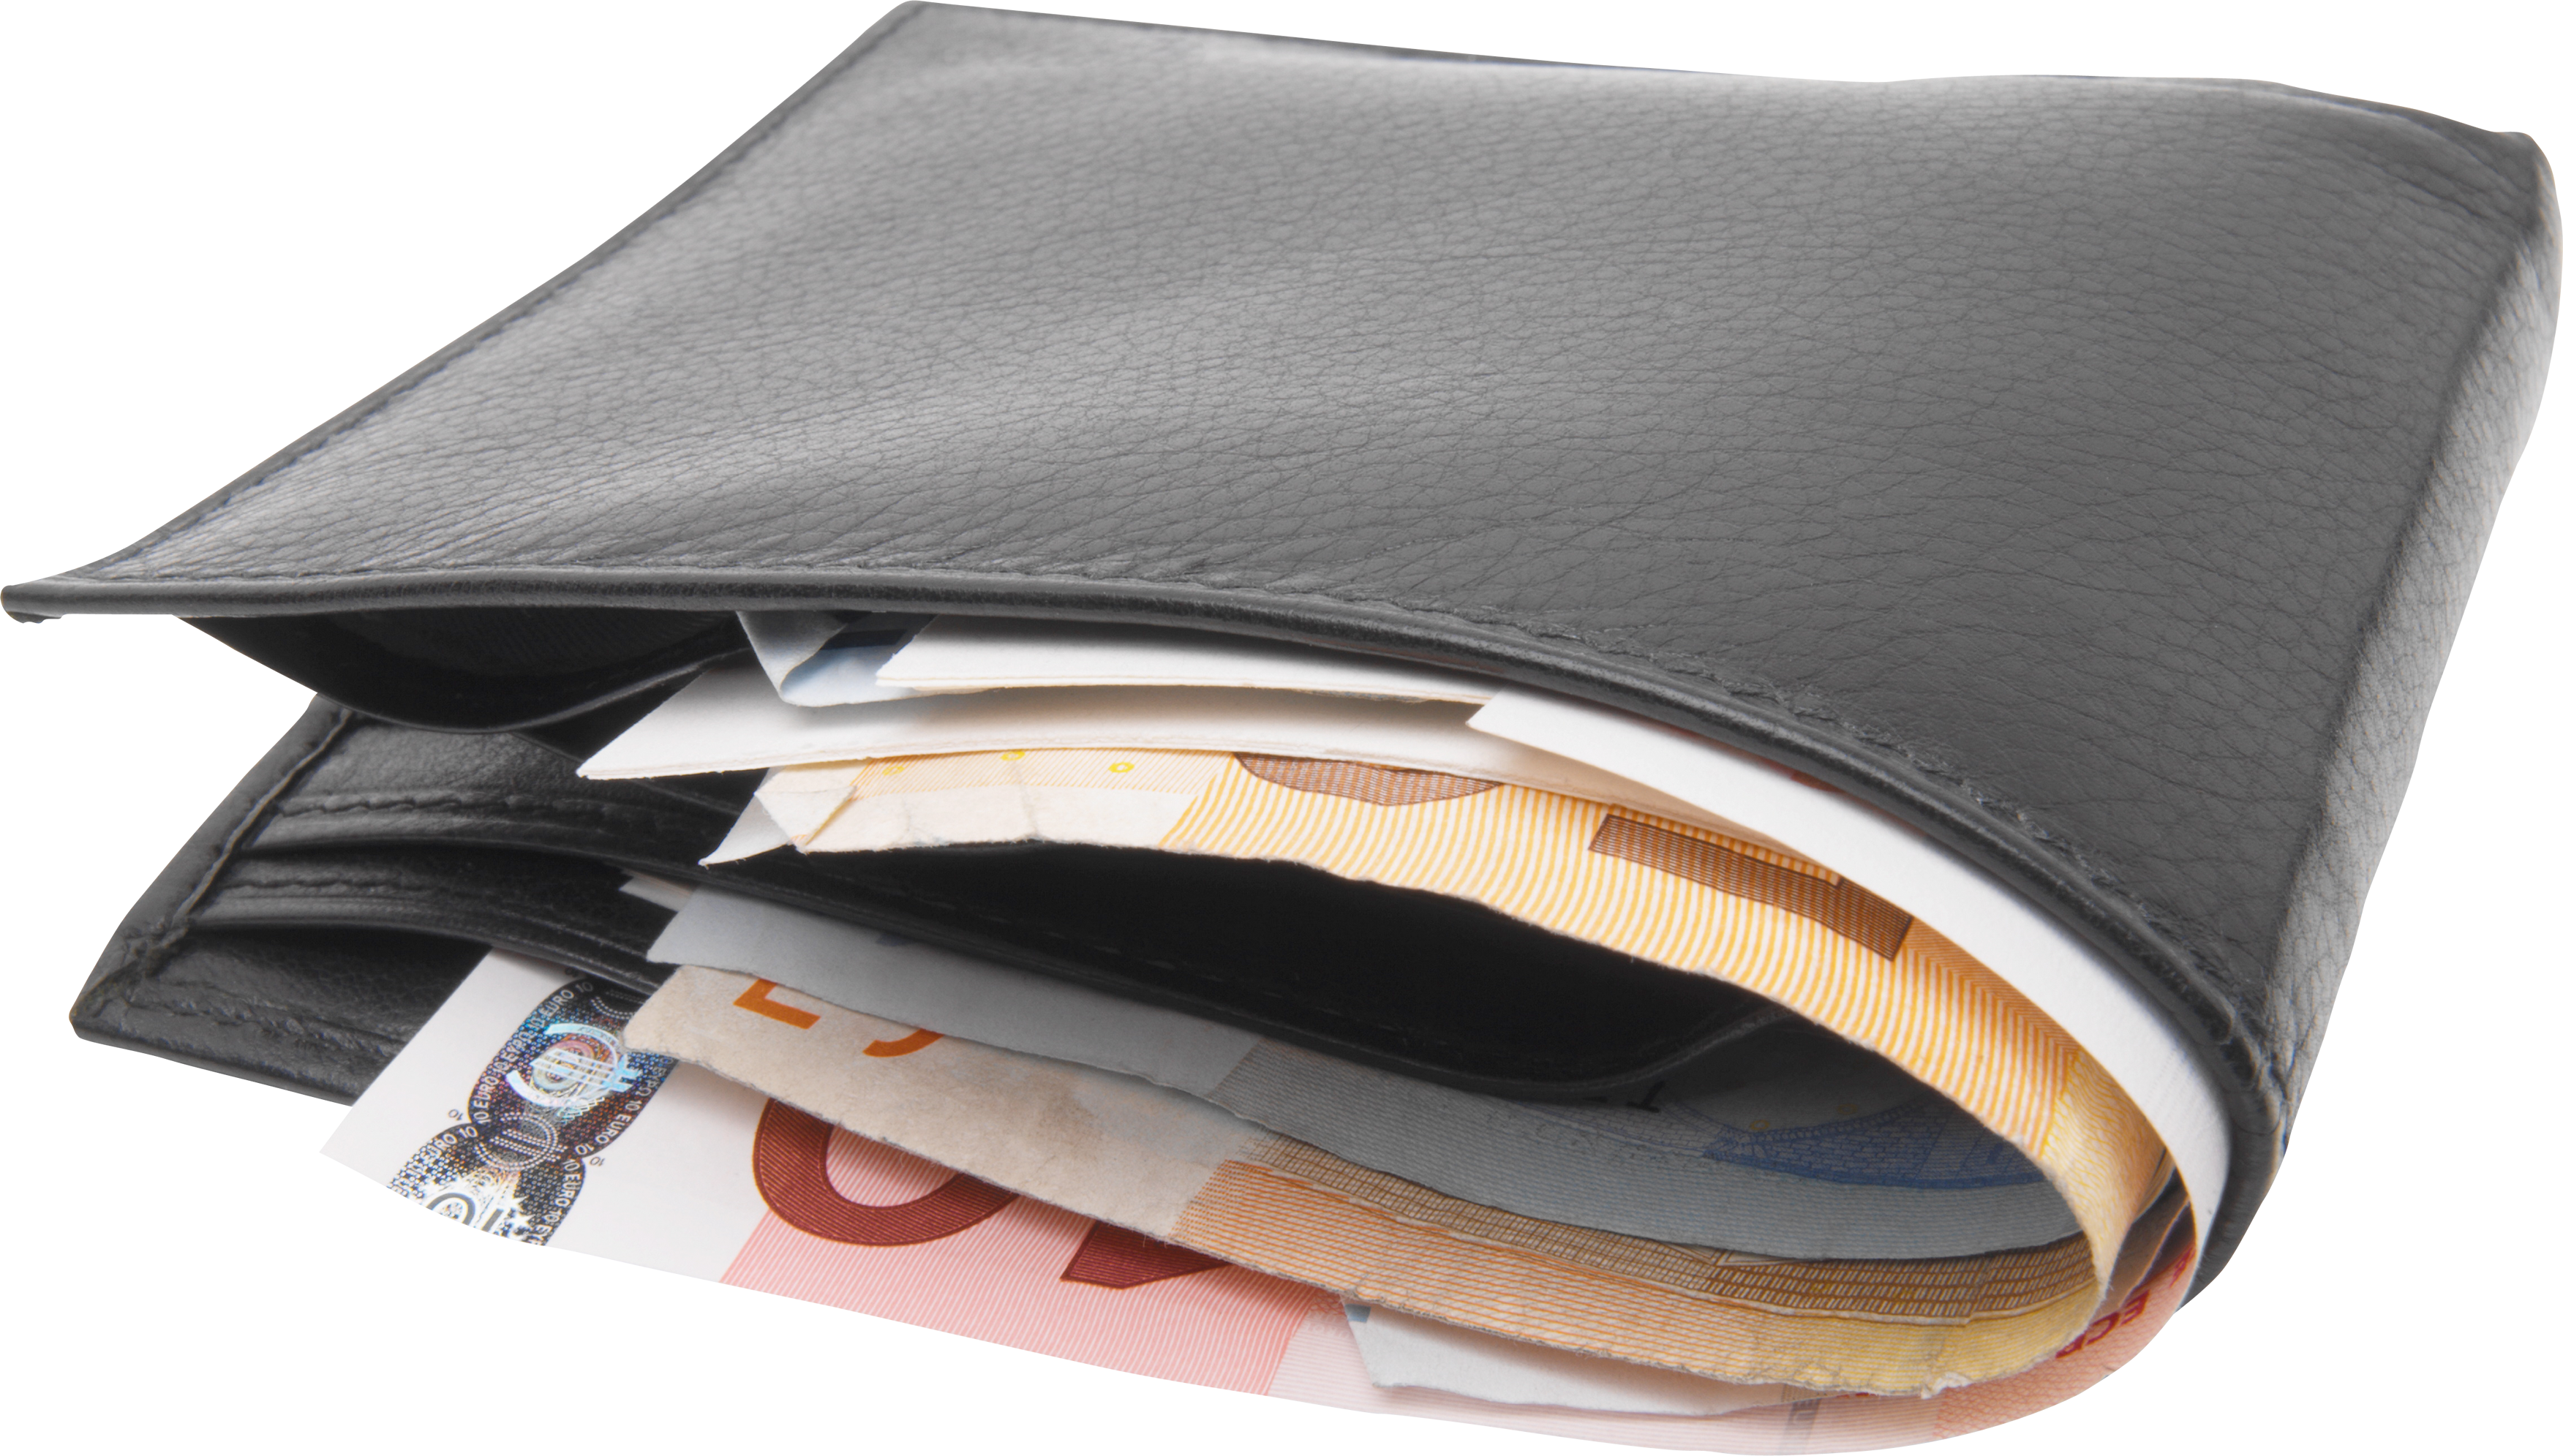 wallet with money png image purepng free transparent cc0 png